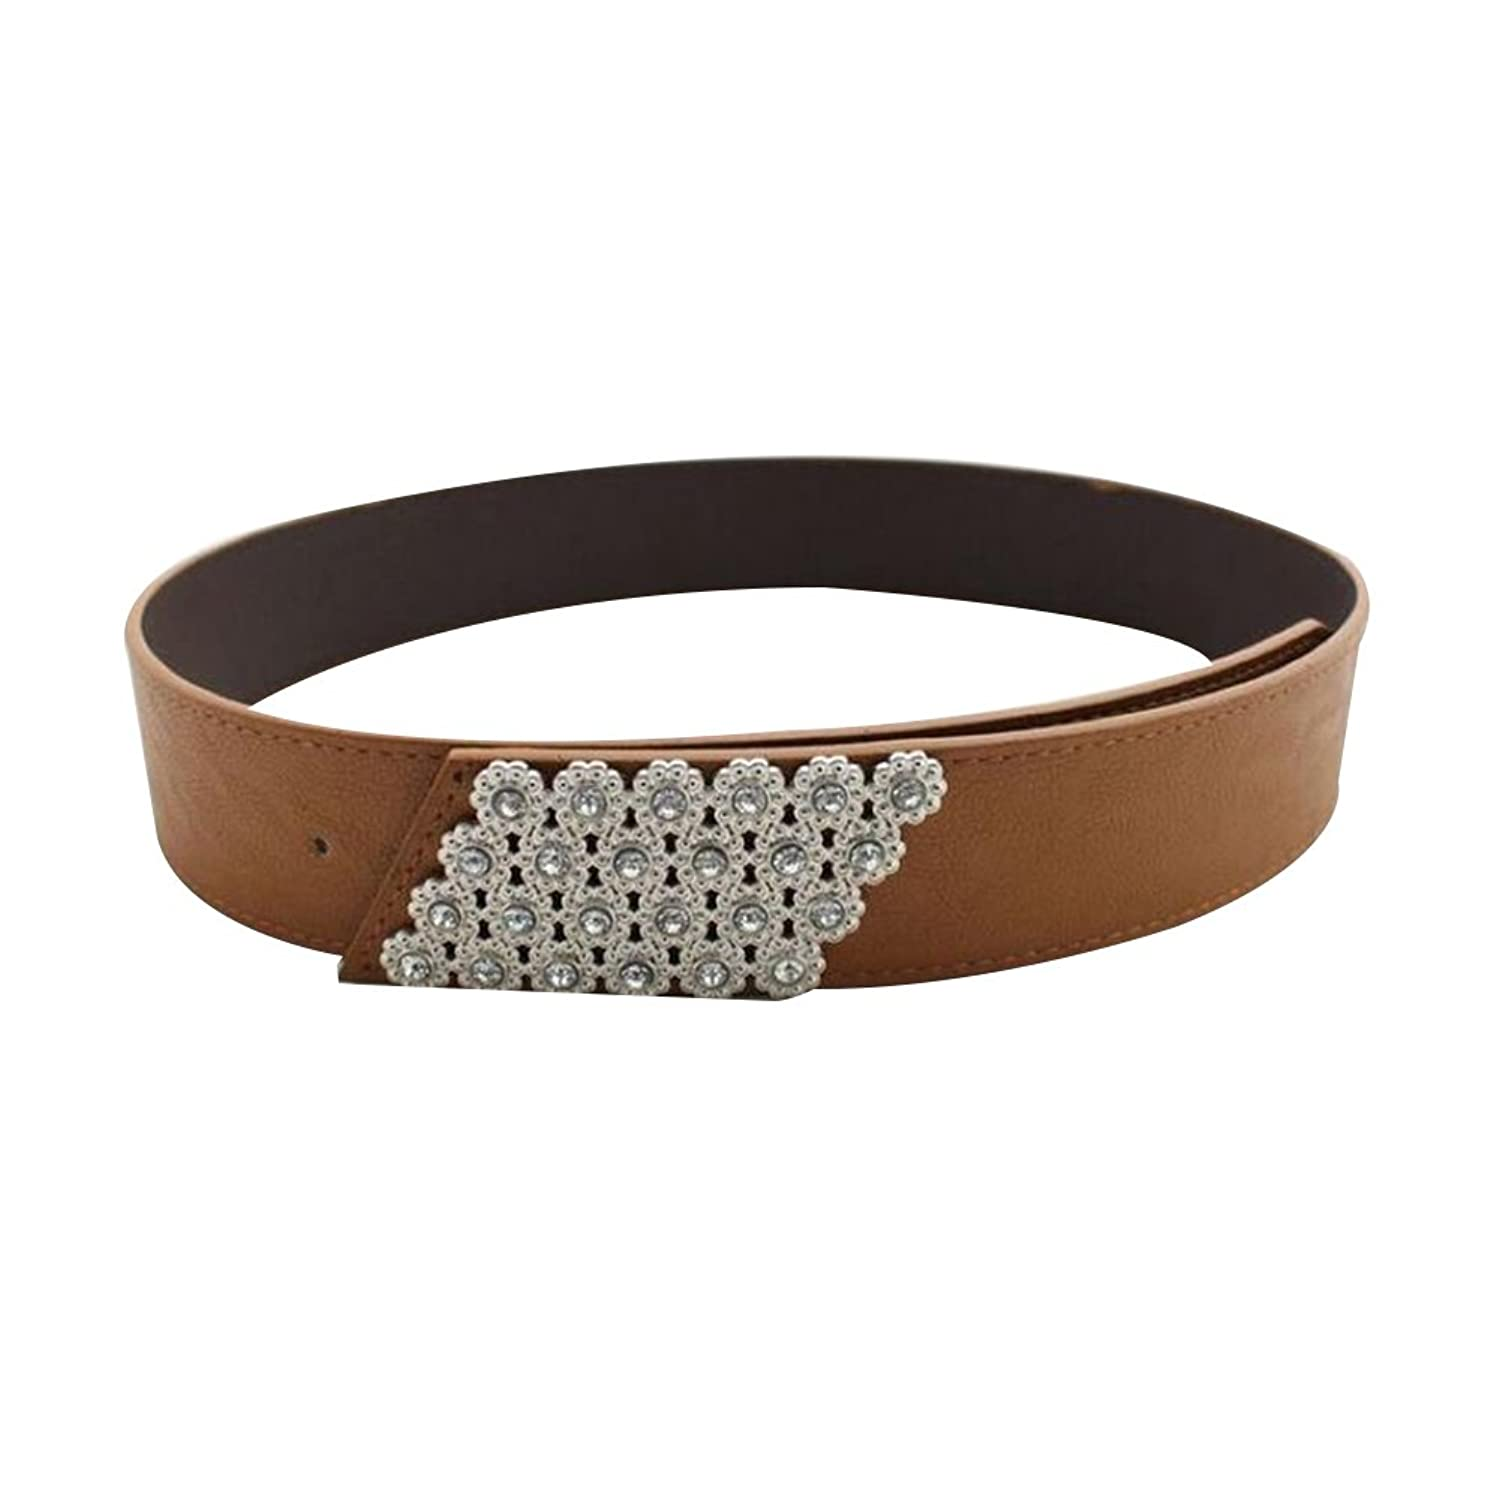 Sitong women's candy-colored diamond flower wide belt(5 colors)